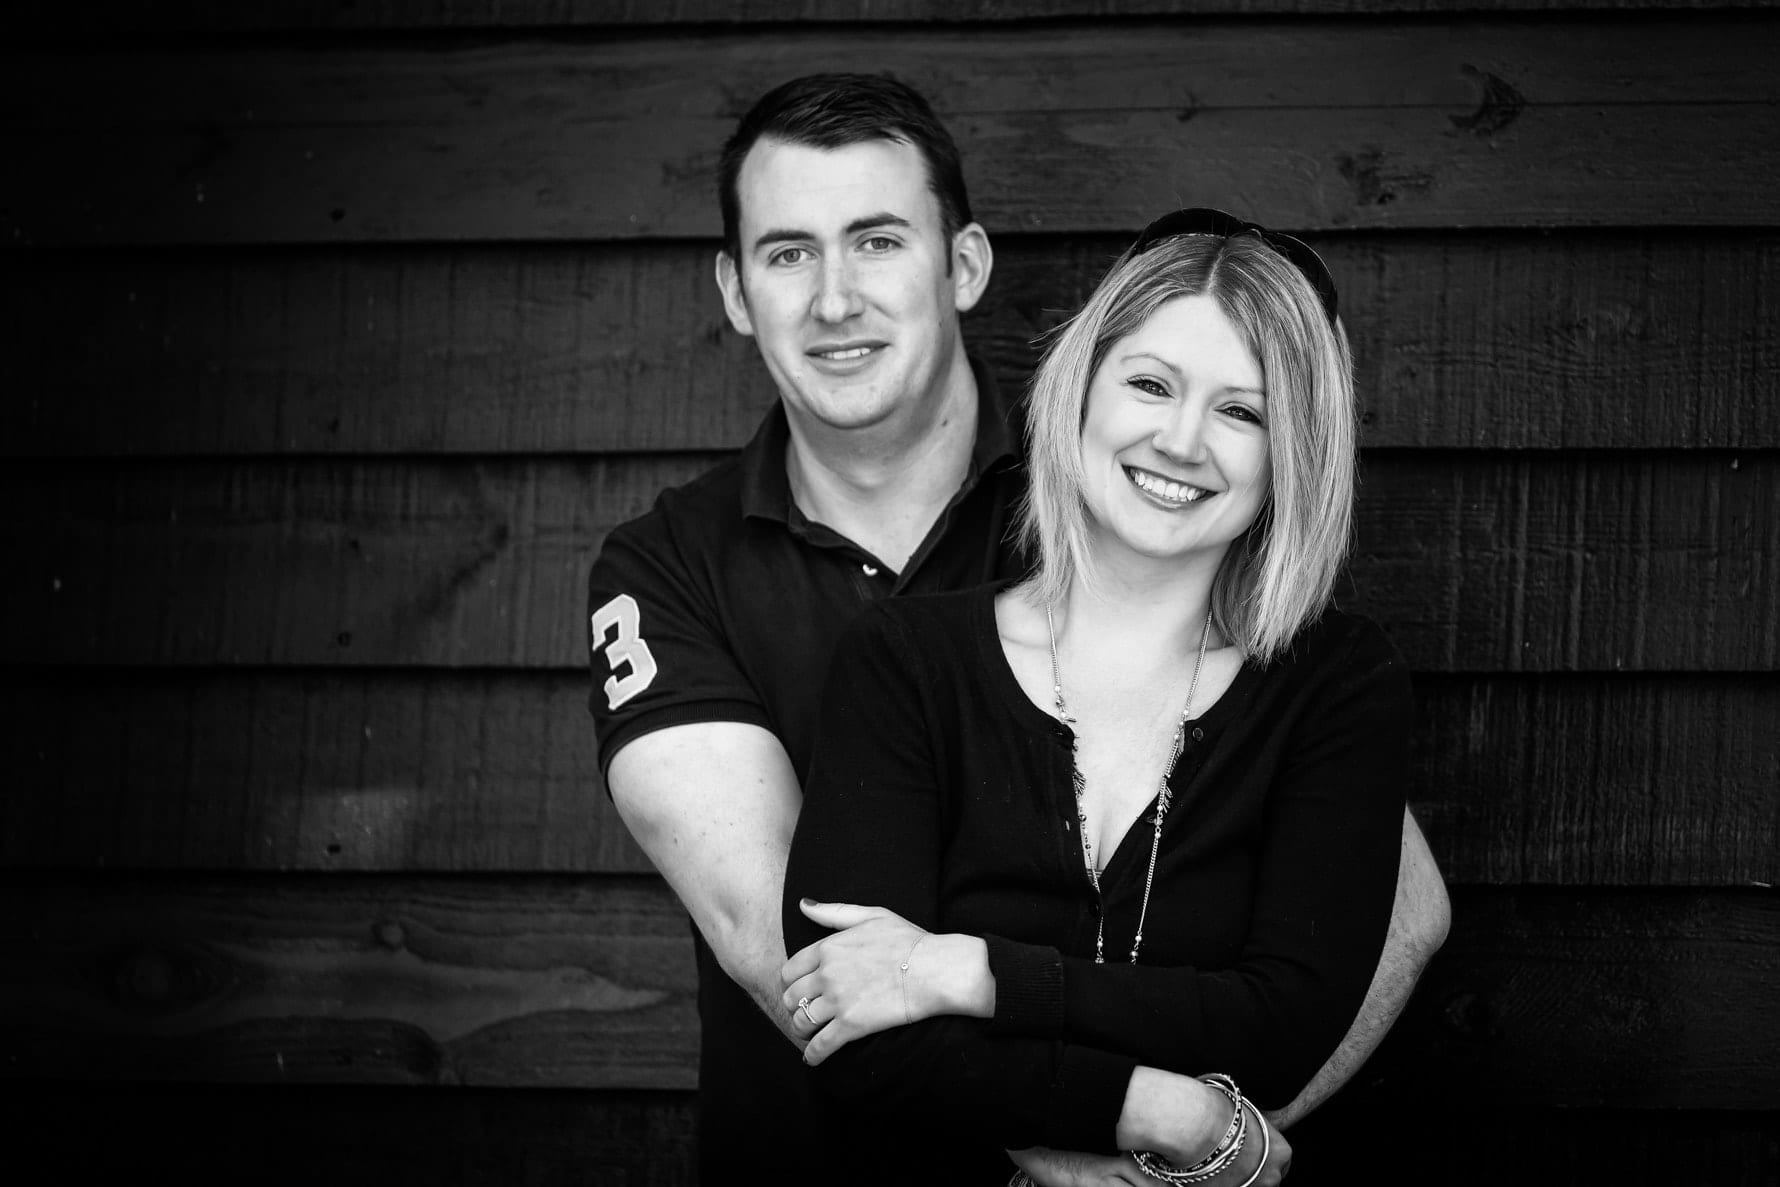 Engagement photoshoot by Hertfordshire wedding photographer